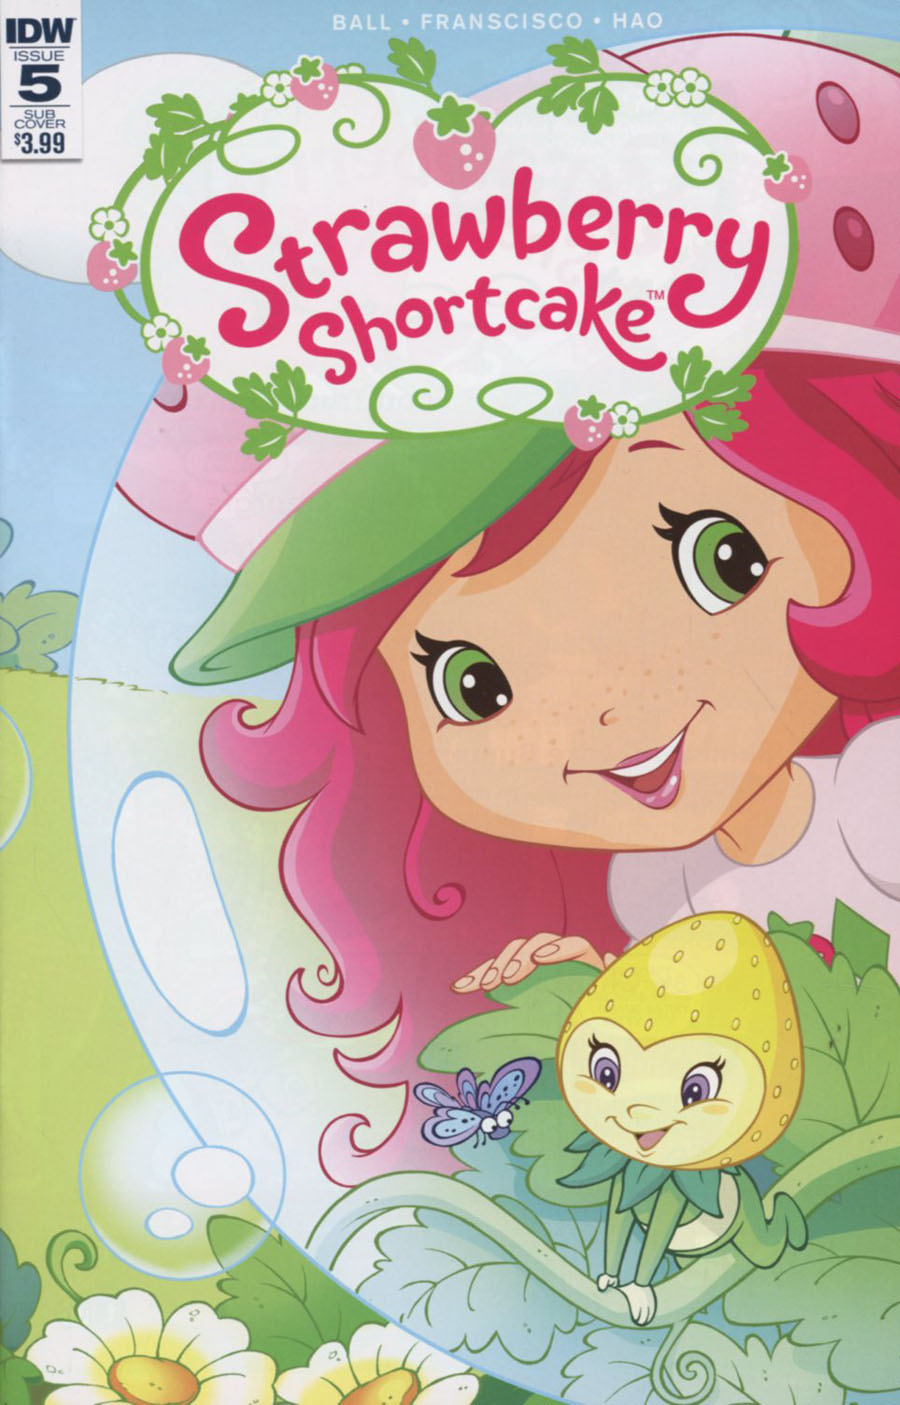 Strawberry Shortcake Vol 3 #5 Cover B Variant Tine Francisco Subscription Cover